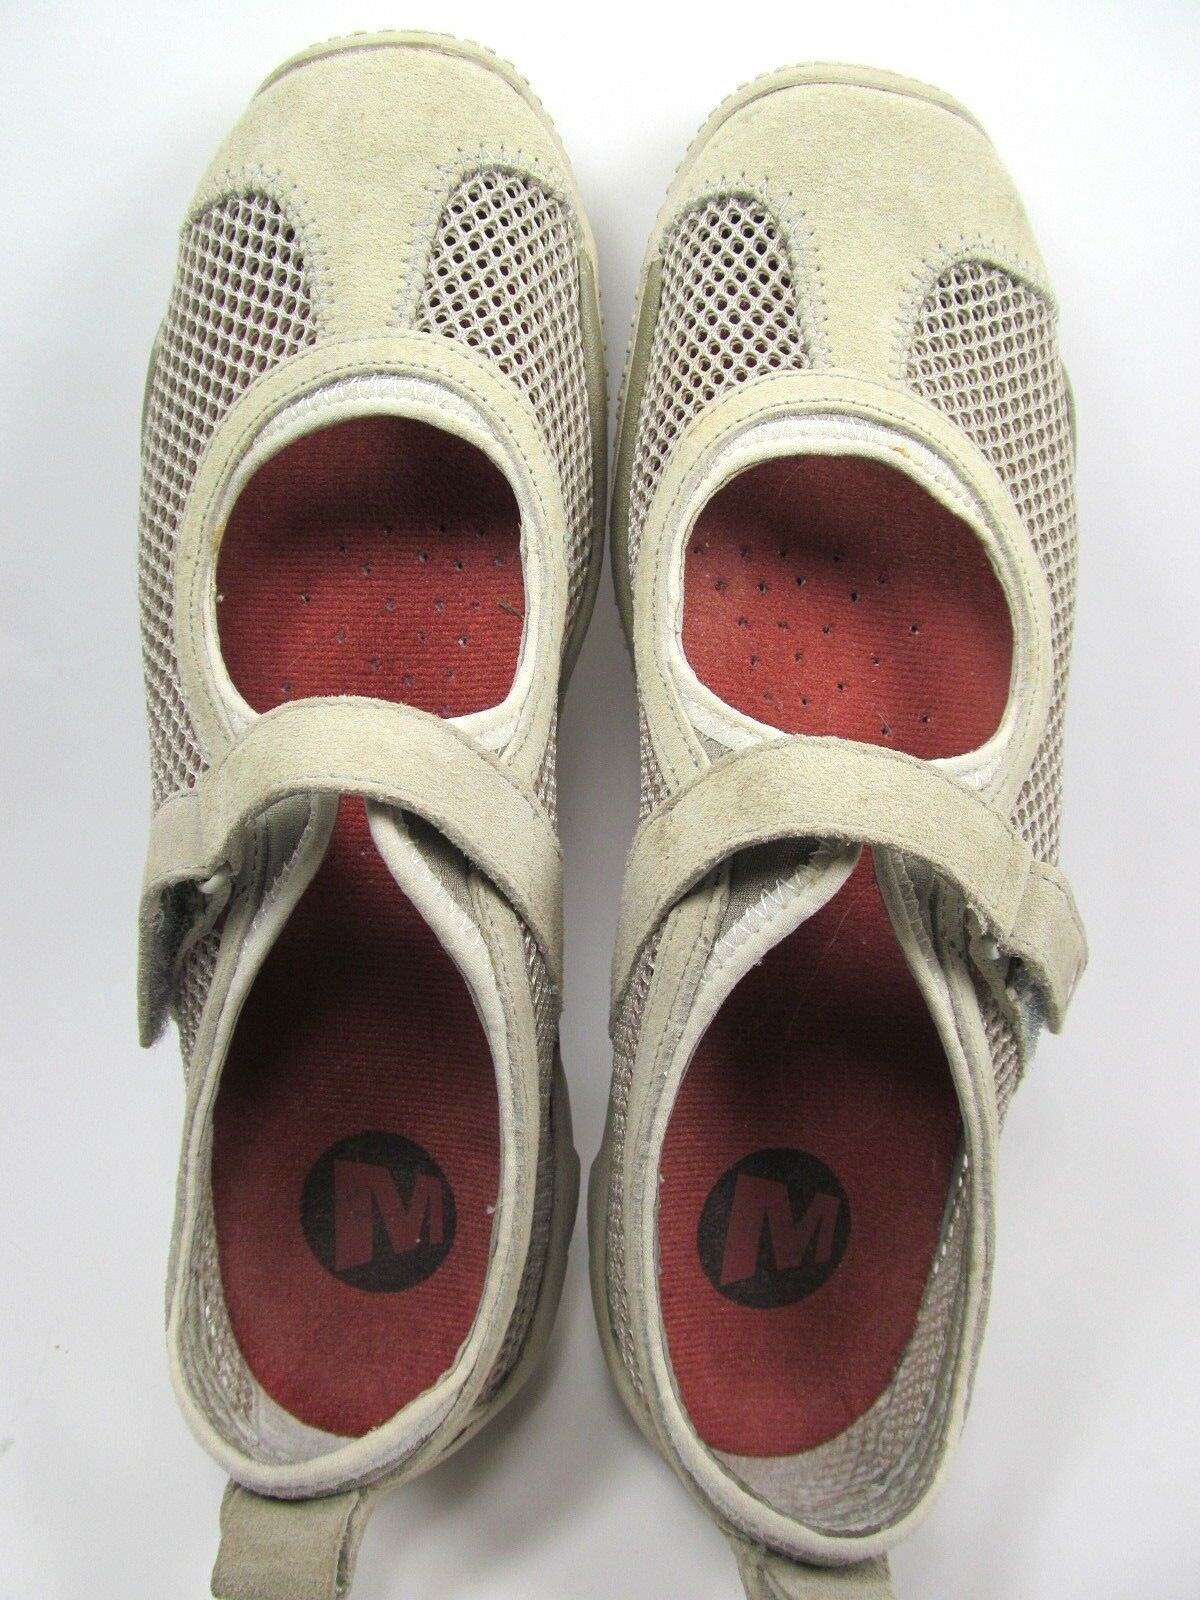 Merrell Taupe Womens Mesh Shoes Size 7.5 M Grey Suede Mary Jane Shoes image 6